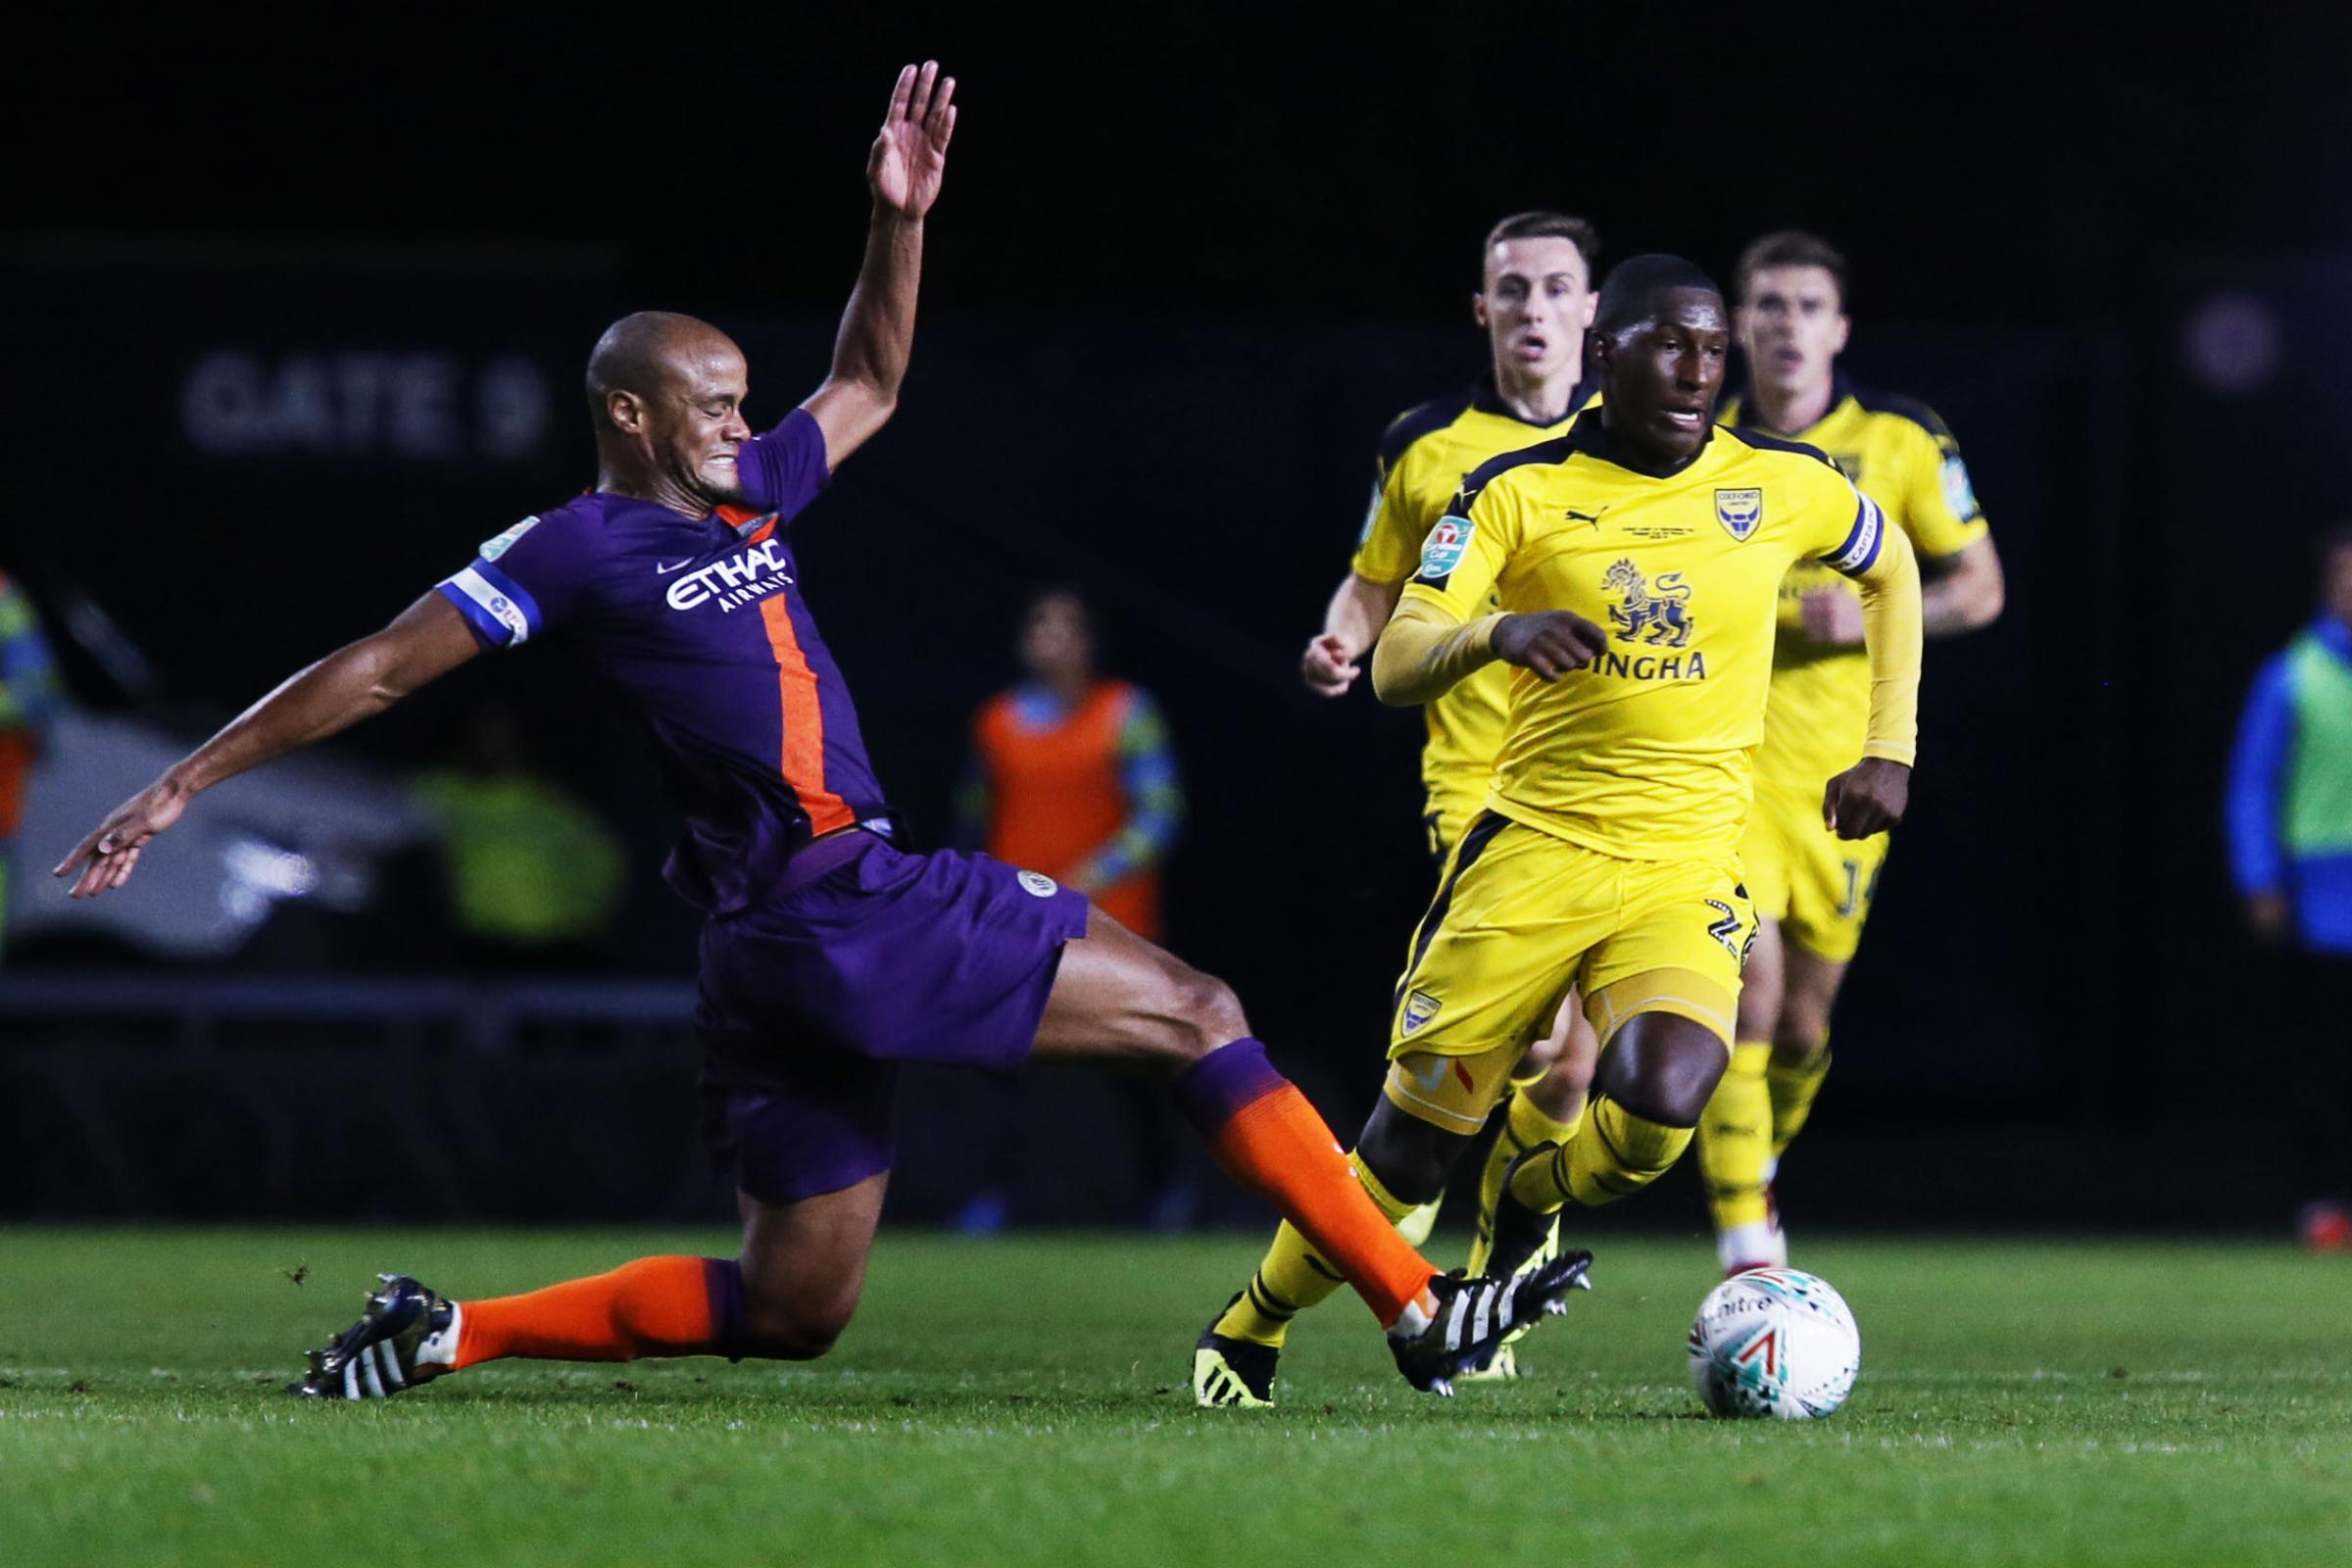 BIG MOMENT: Oxford United captain Shandon Baptiste tackles his opposite number Vincent Kompany during the Carabao Cup defeat against Manchester City on Tuesday